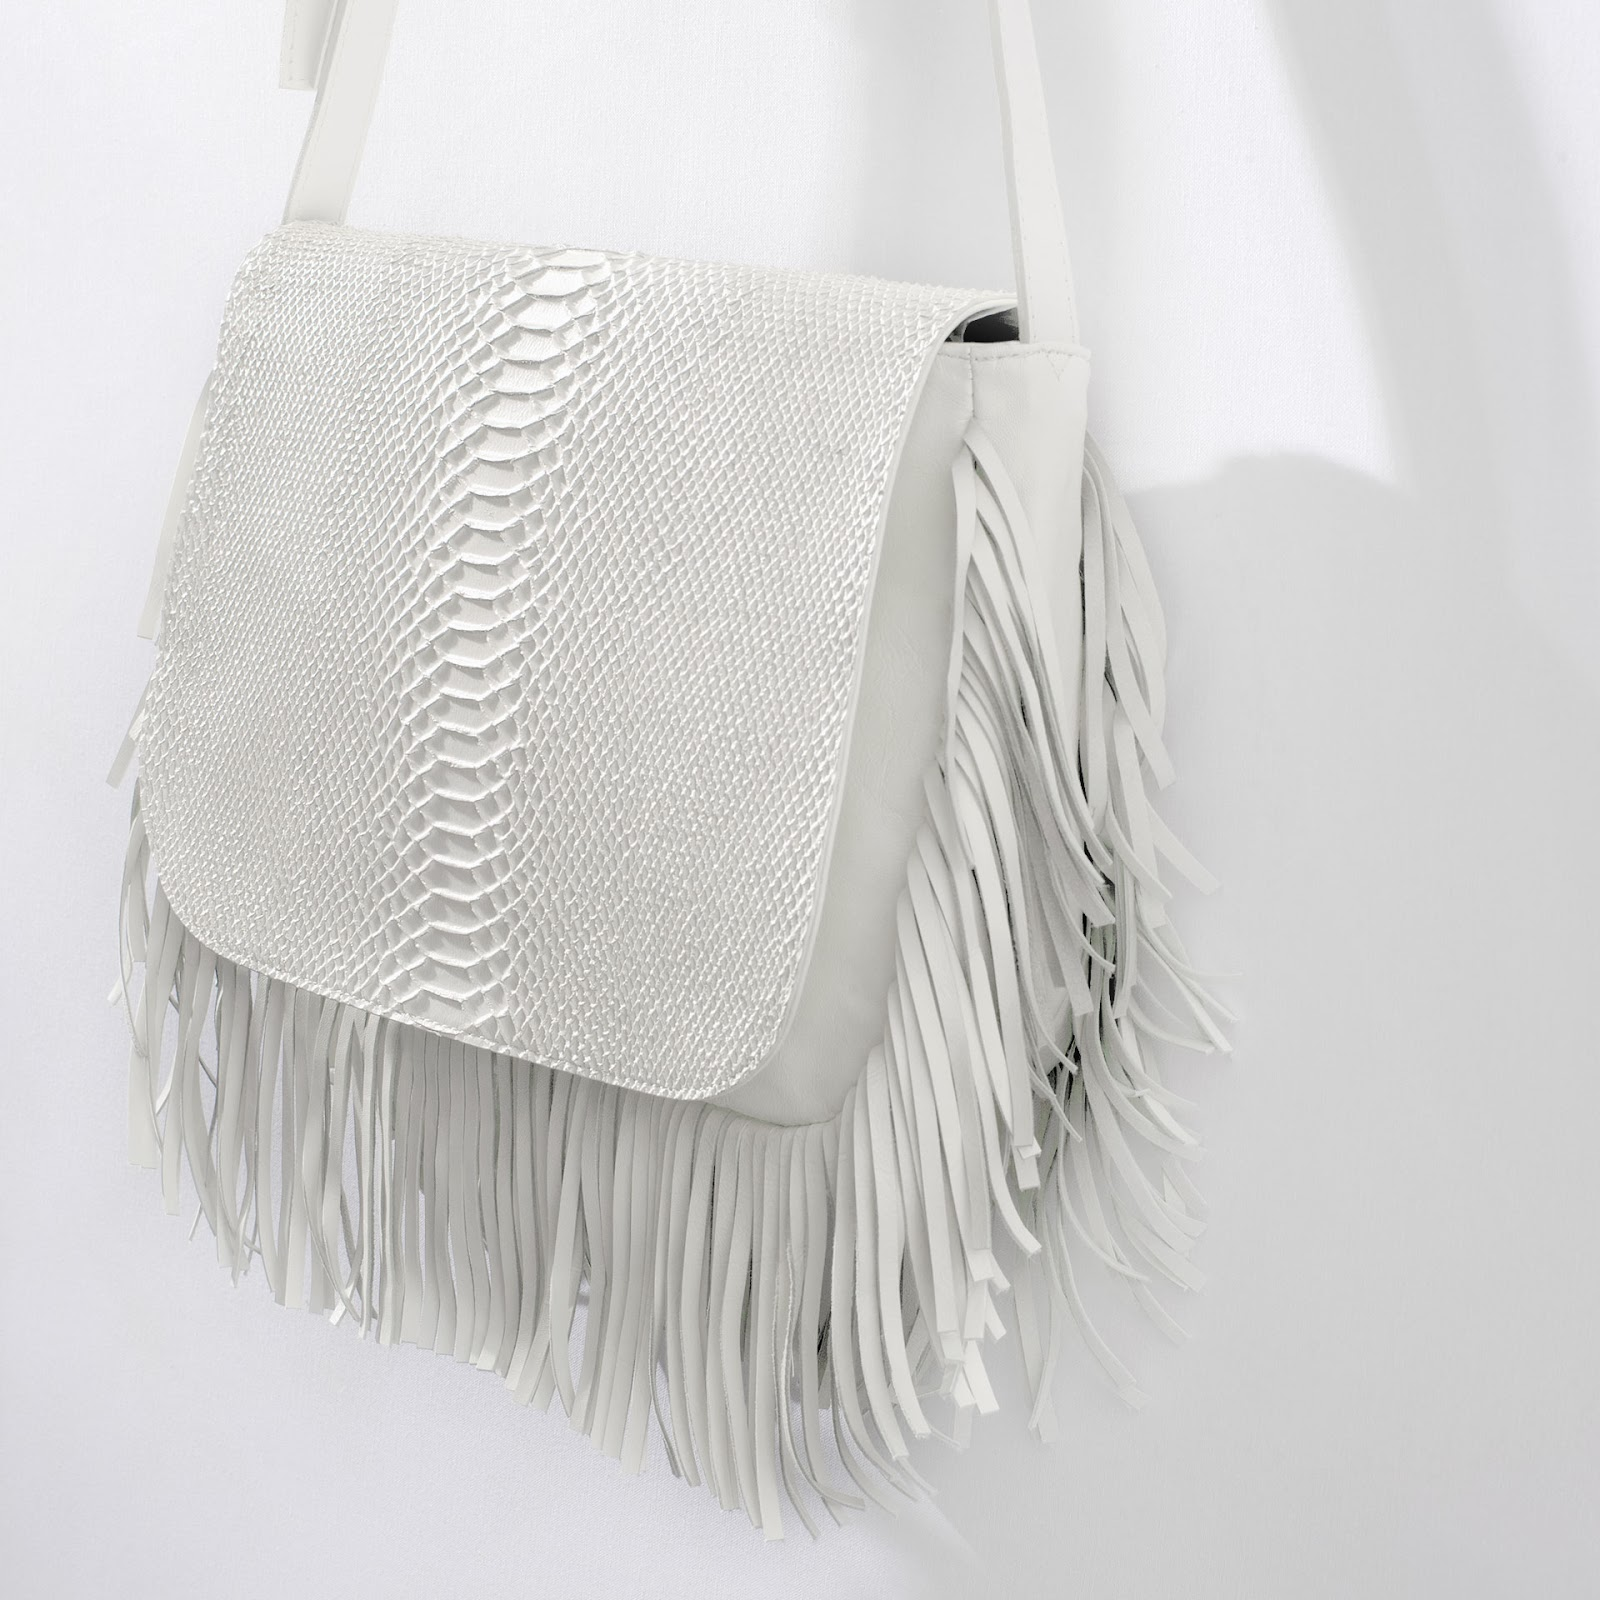 zara white handbag